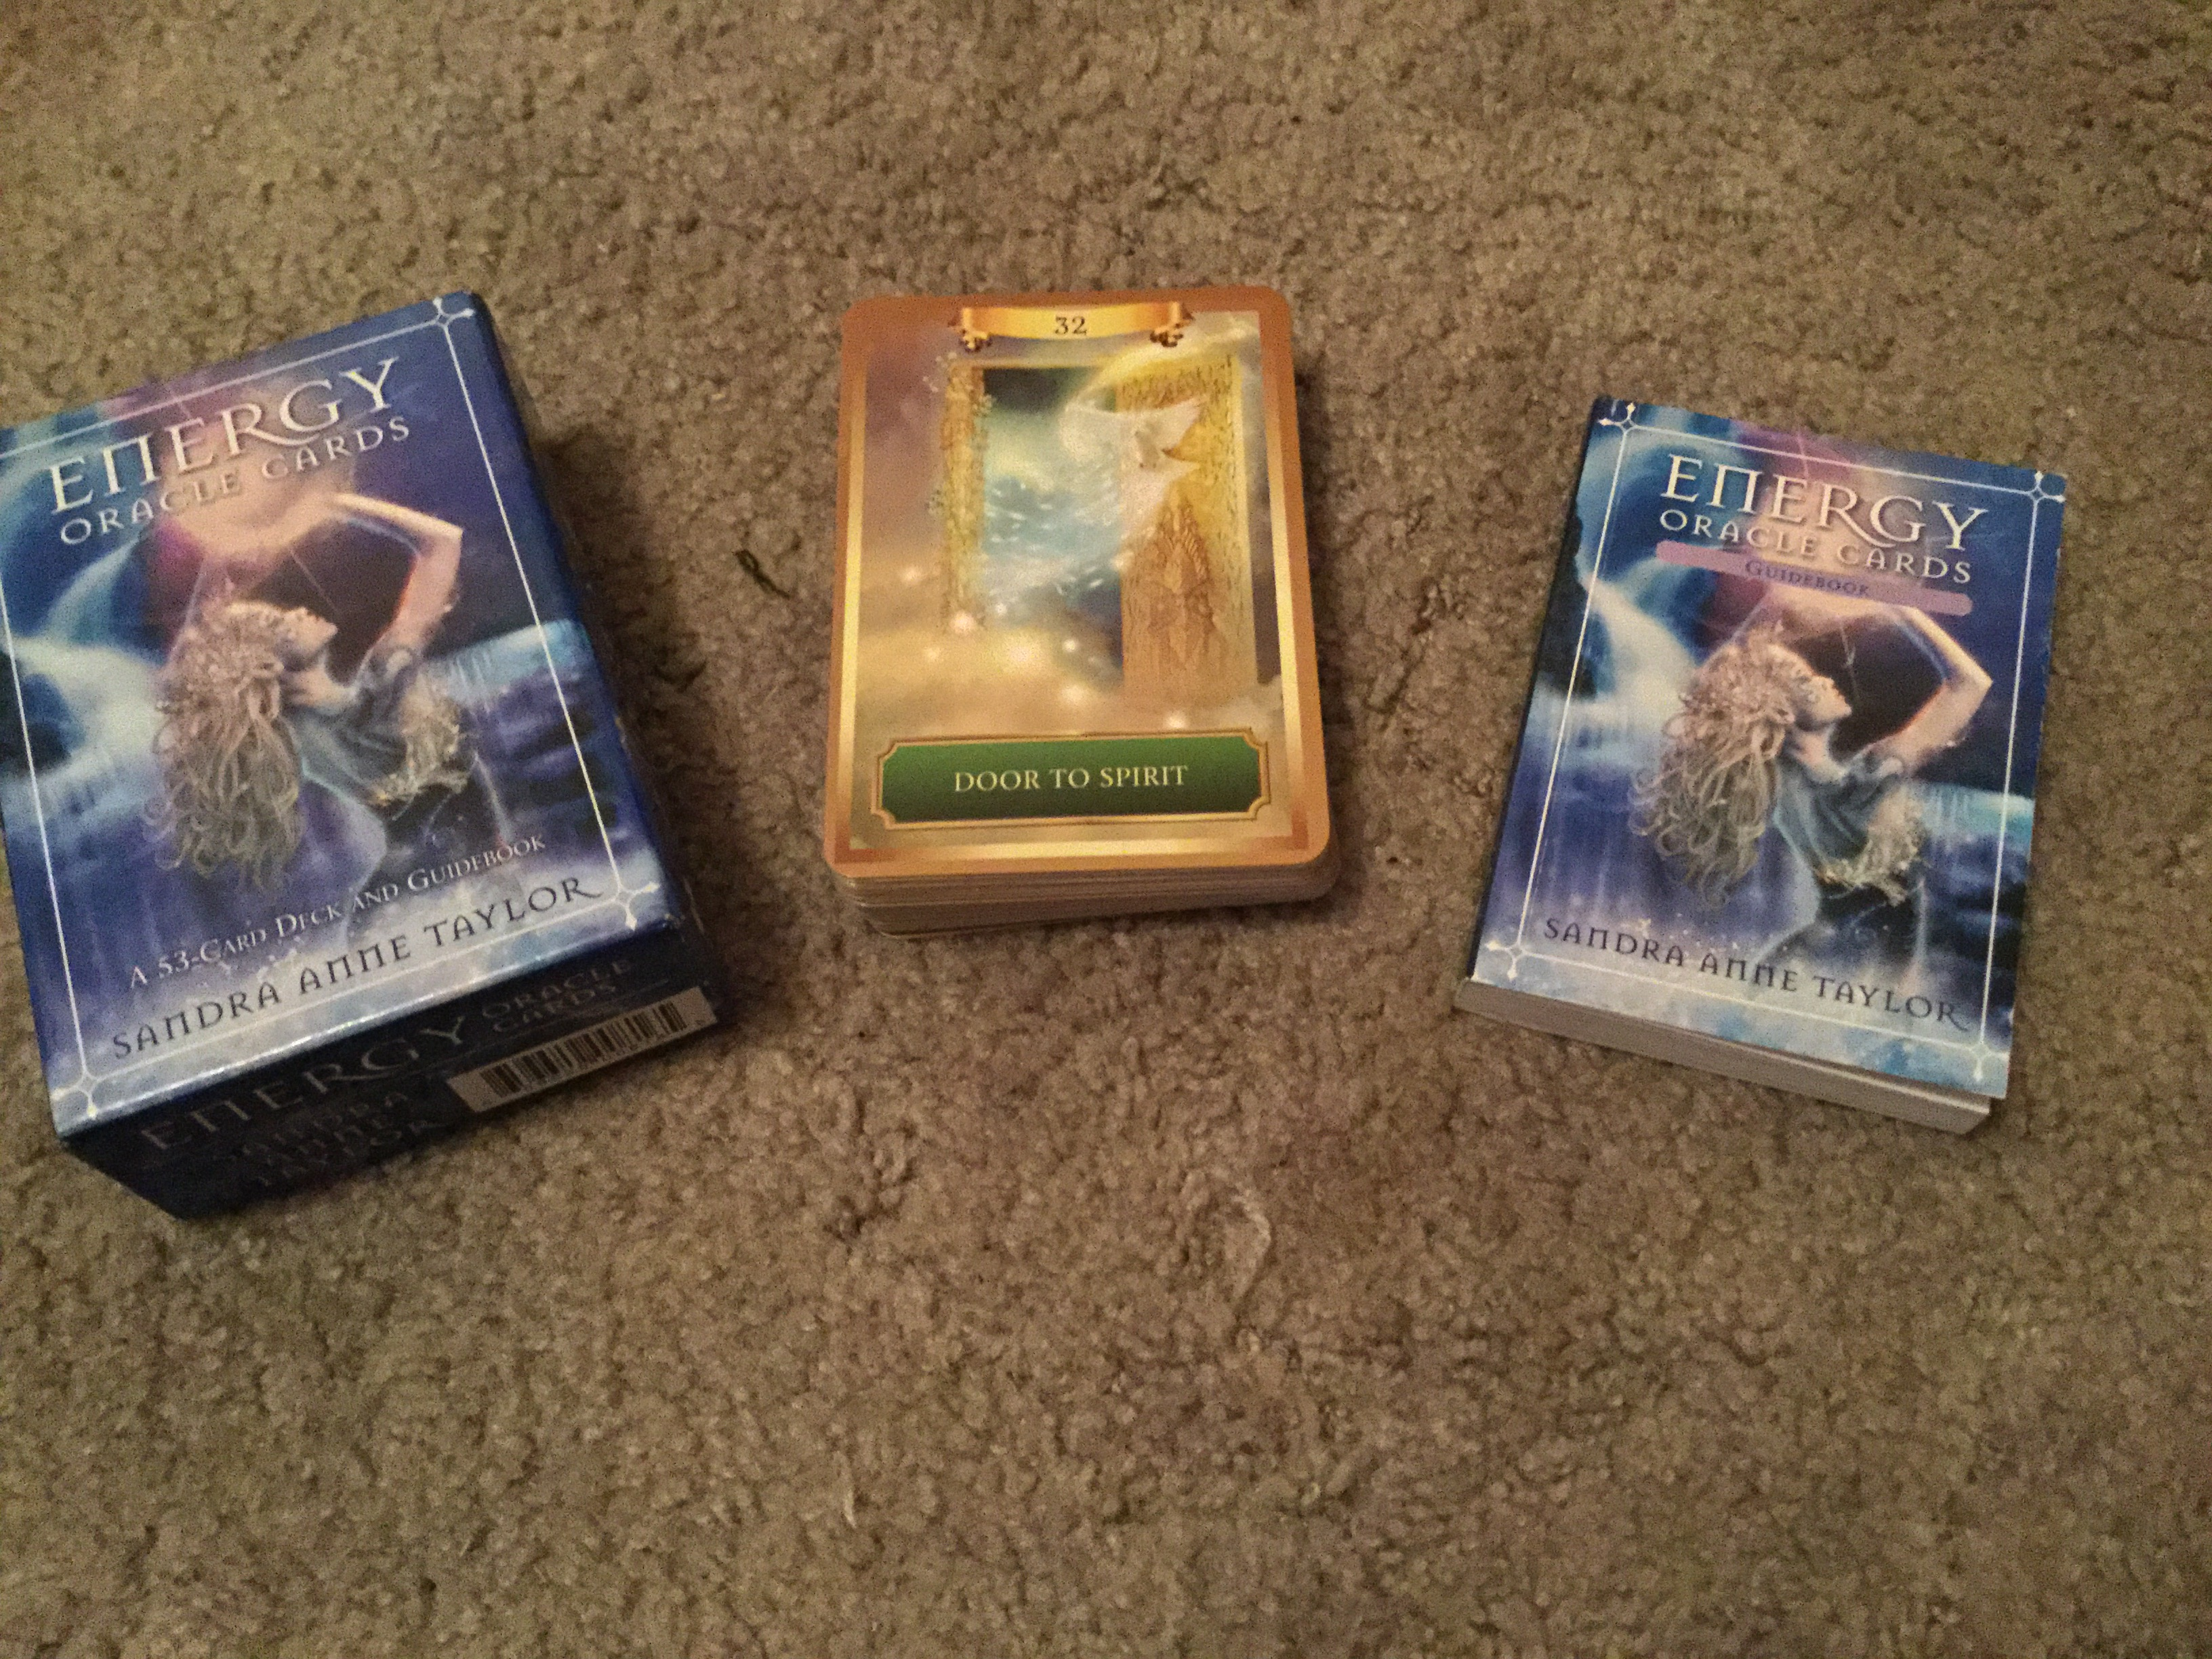 Give a 7 card tarot reading